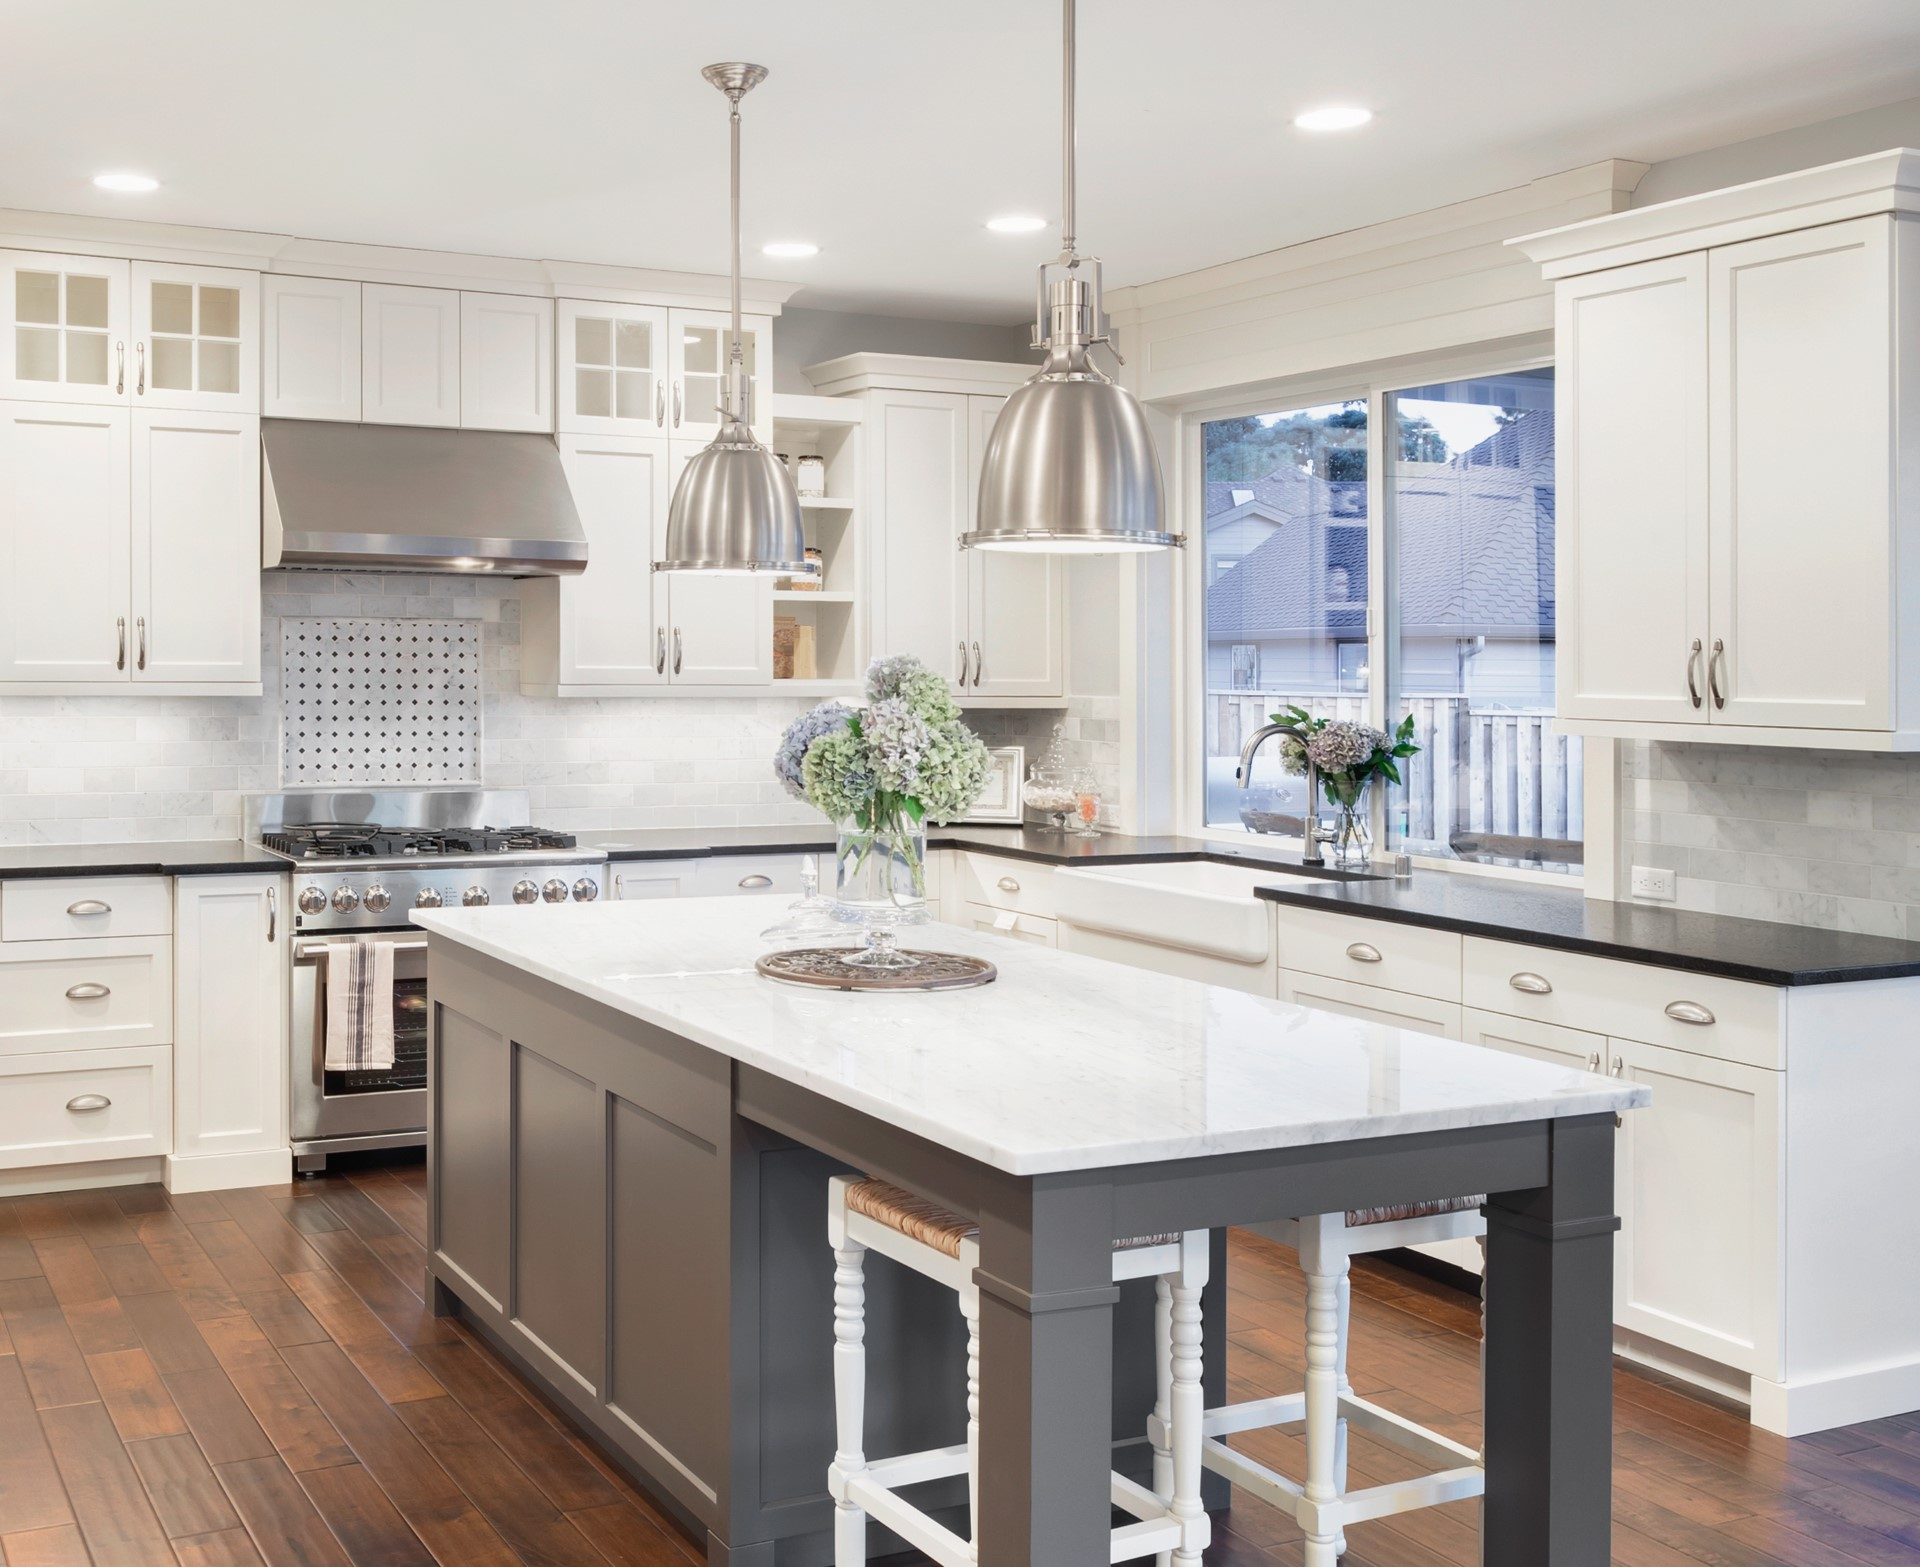 This french style contempory kitchen takes things to the next level. It starts with bright white cabinets to help open up the room. This cabinet style is gaining traction because it's a reasonably priced solution to updating your current outdated cabinets. I personally like having a dark colored island because it concentrates your focus on the beauty of the the cabinetry. Our